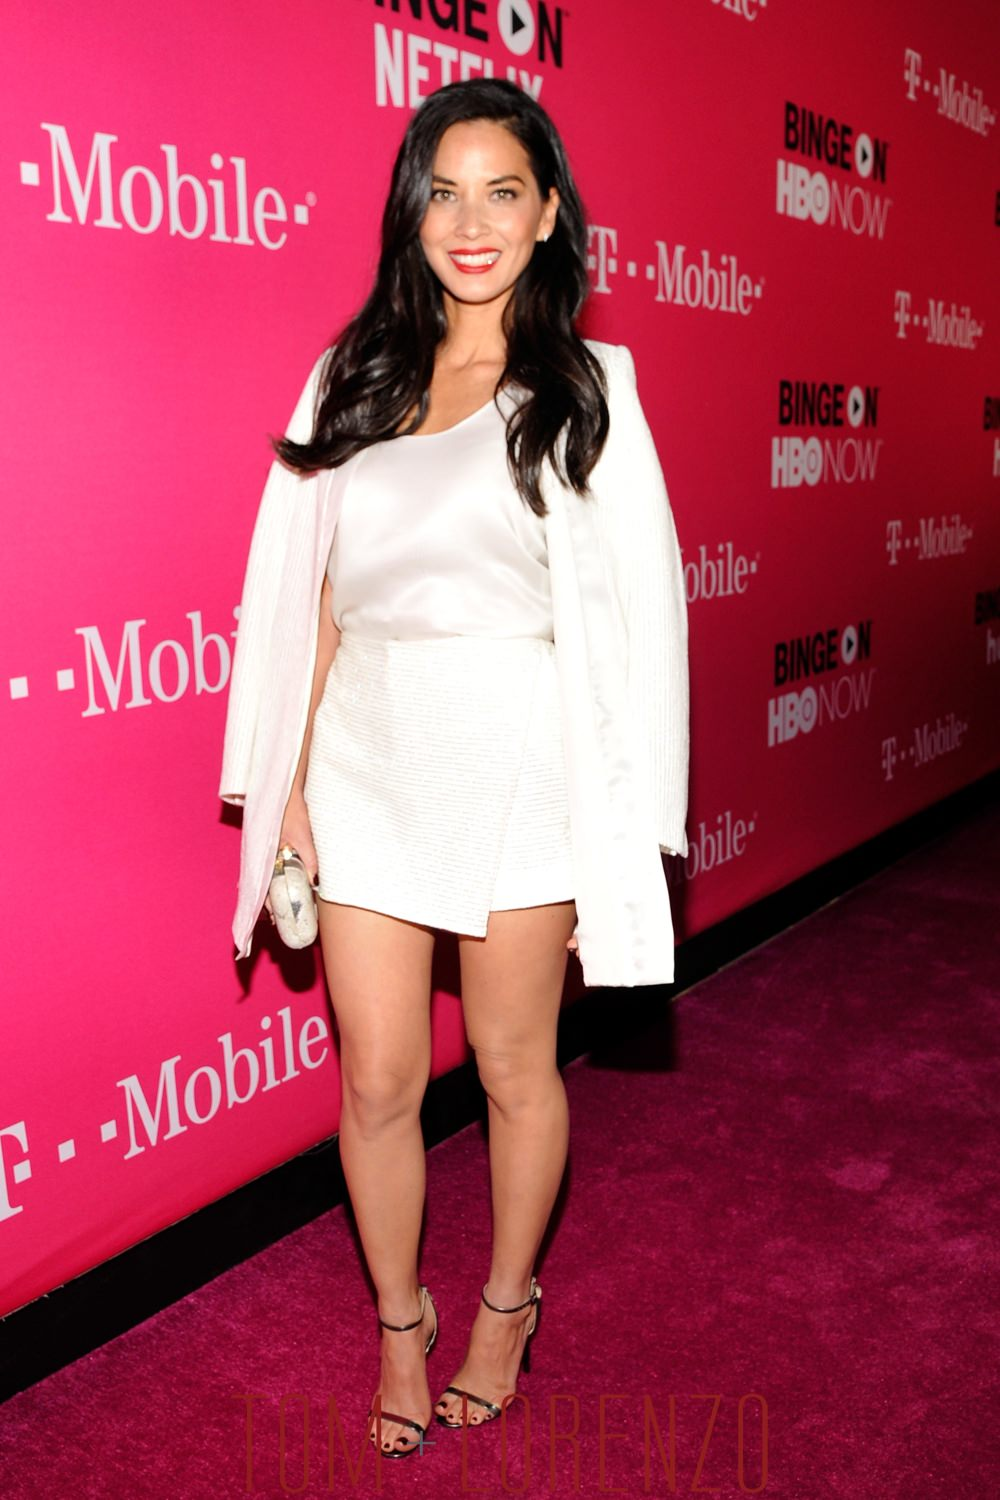 skirt for mobile home cheap with Olivia Munn At The T Mobile Un Carrier X Launch Celebration on Blue Ivy Carter Photos Beyonce Jay Z Baby First Photo n 1269671 furthermore 351421577144451432 further 32508008810 additionally 20140620 183138 further 337933 Mobile Home Insulated Skirting.